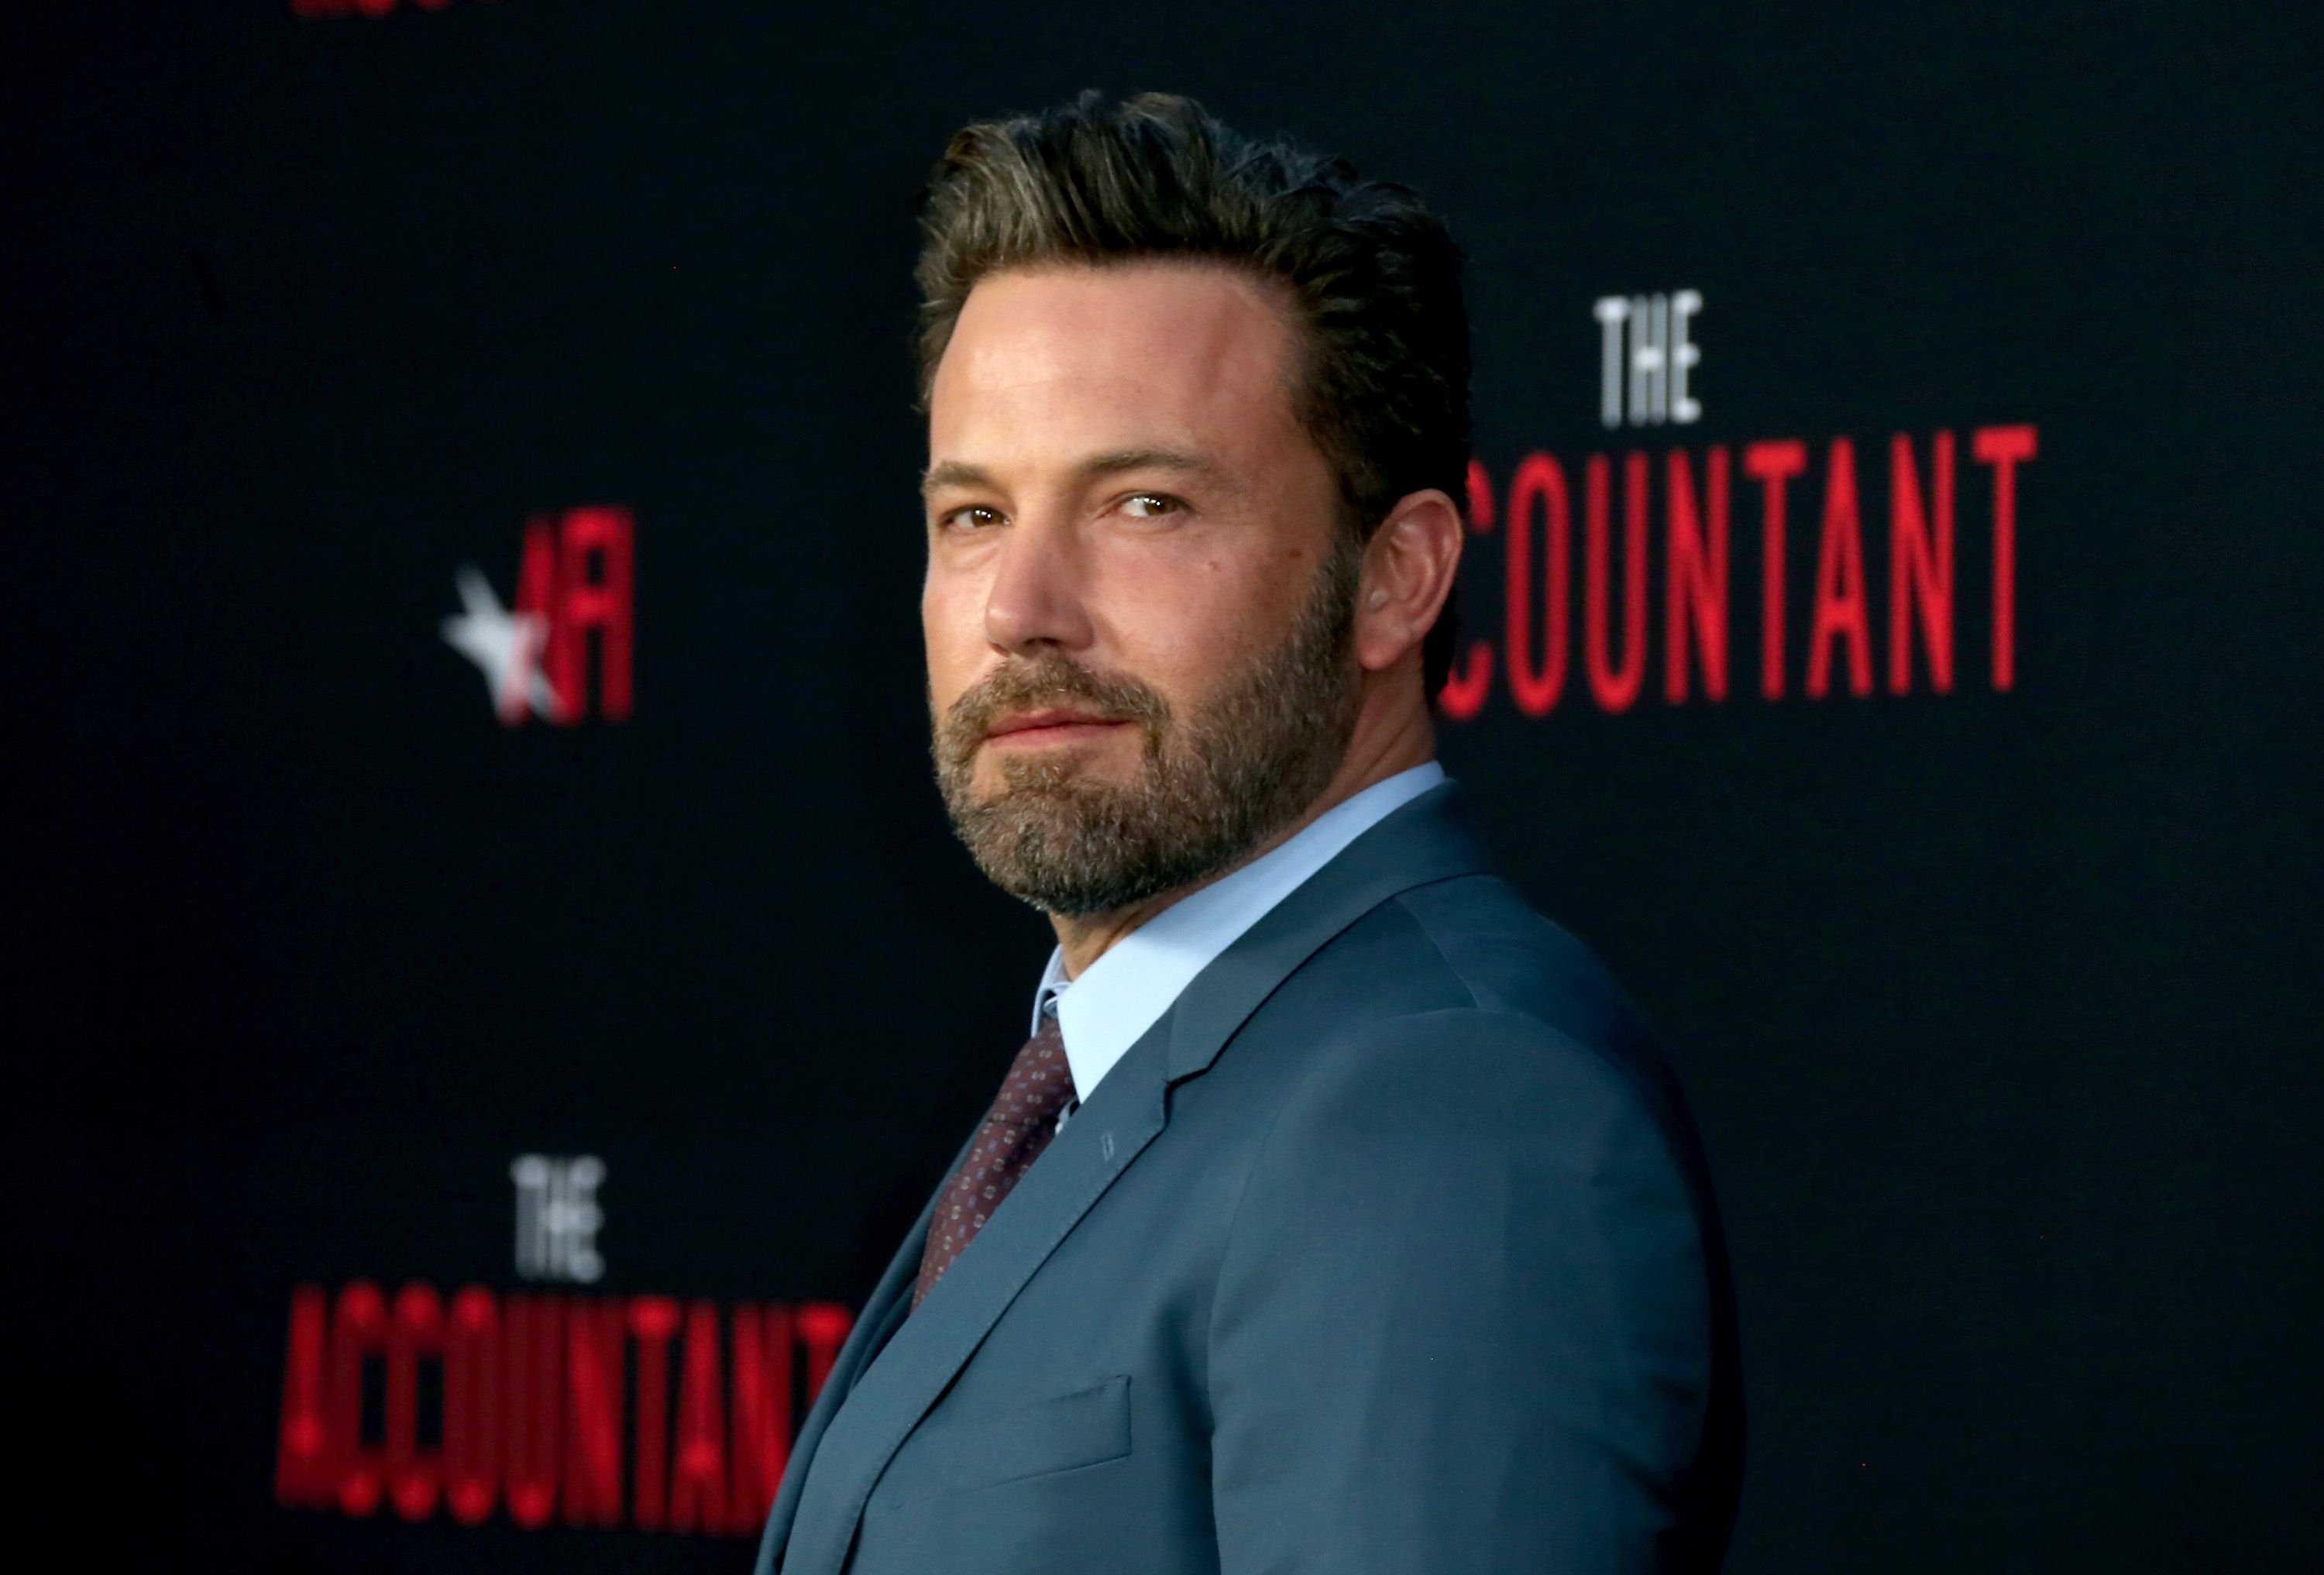 """Ben Affleck at the premiere of """"The Accountant"""" at TCL Chinese Theatre on October 10, 2016, in Hollywood, California 